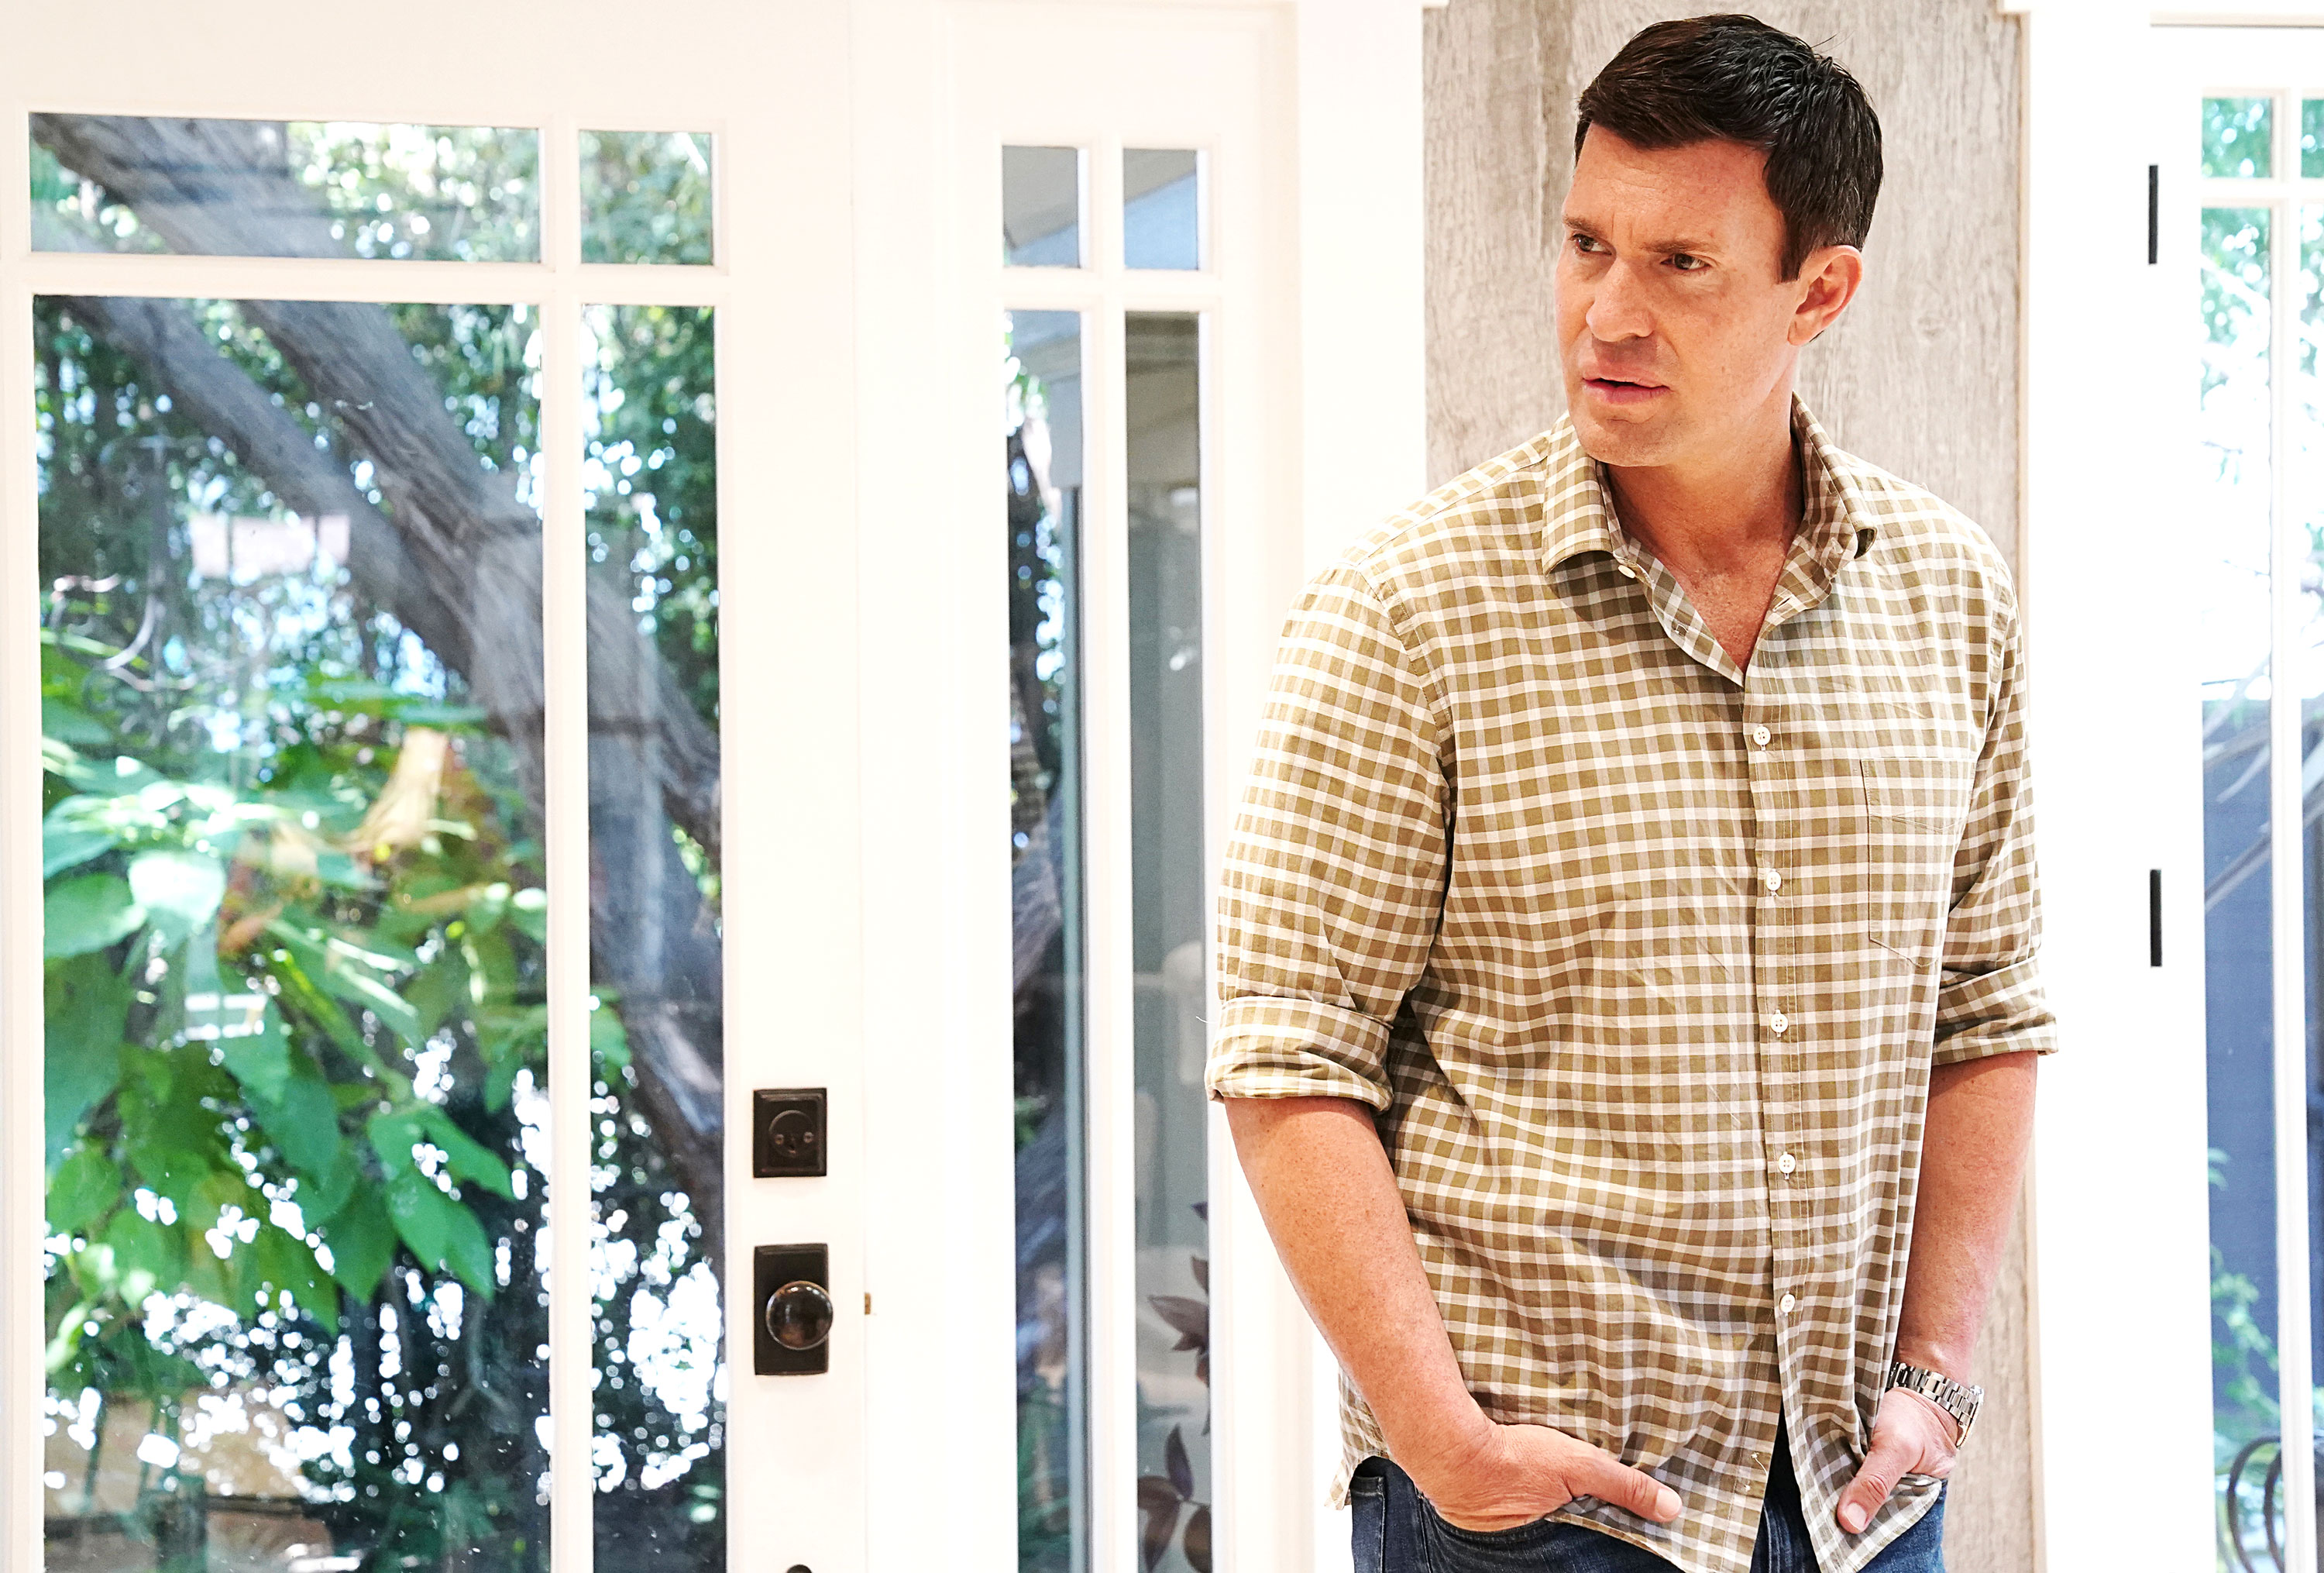 Jeff Lewis Discusses Visitation Schedule With Ex Gage Edwards - Jeff Lewis on Bravo's 'Flipping Out'.